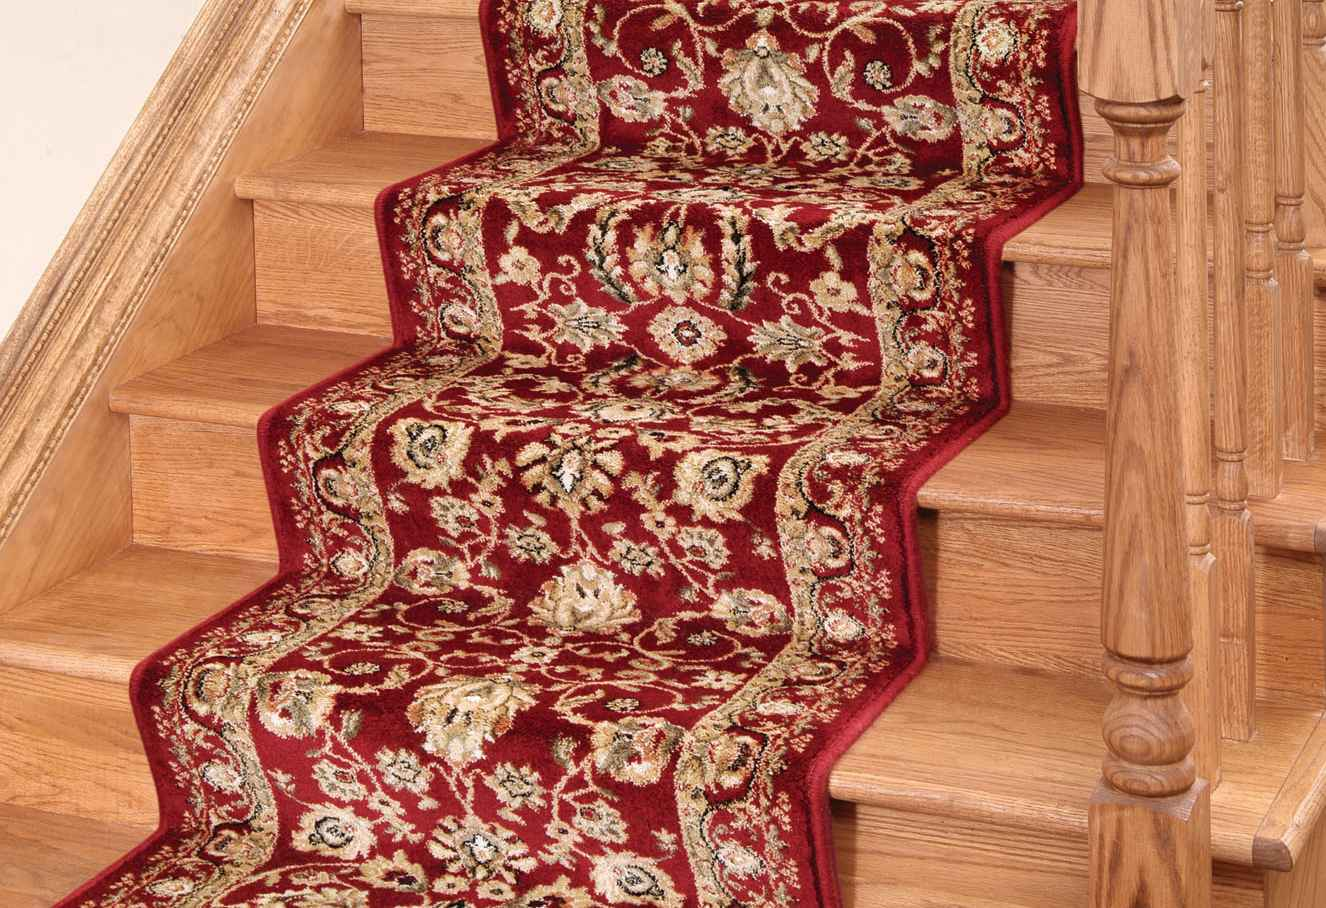 Carpet for stairs home depot - Carpet Runner For Stairs Home Depot Photo 1